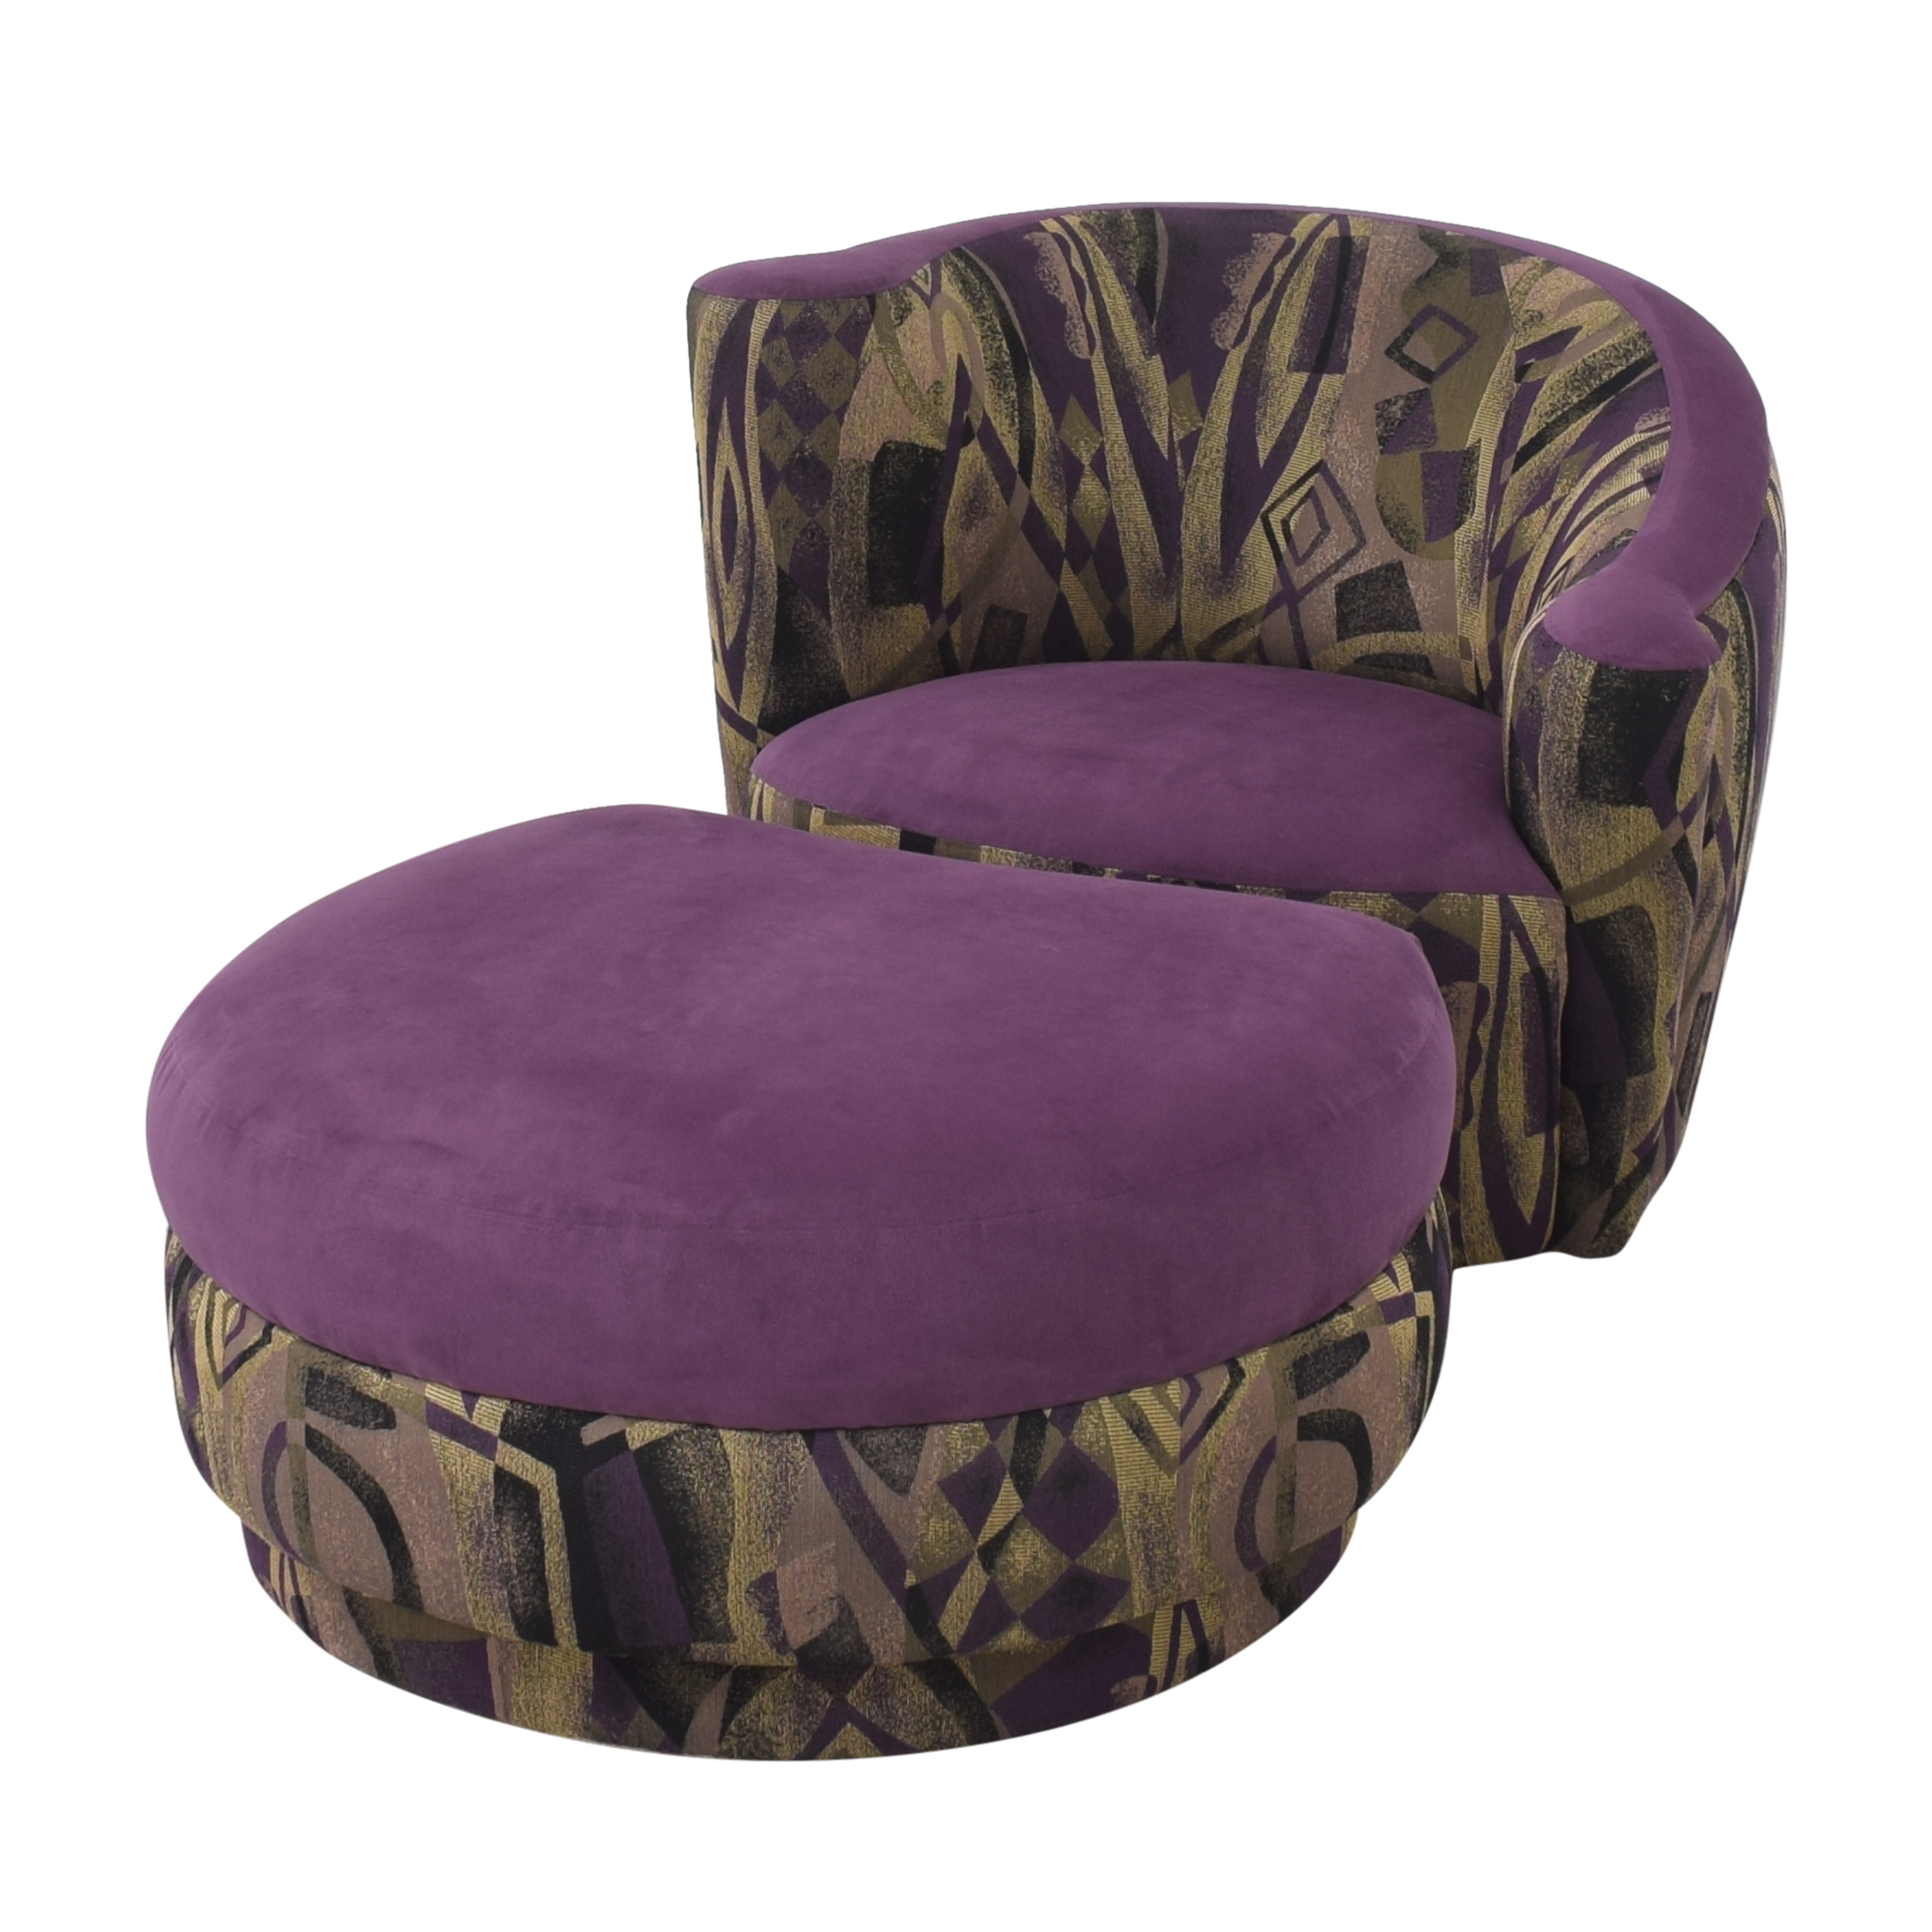 Weiman Weiman Nautilus Lounge Chair and Ottoman ct